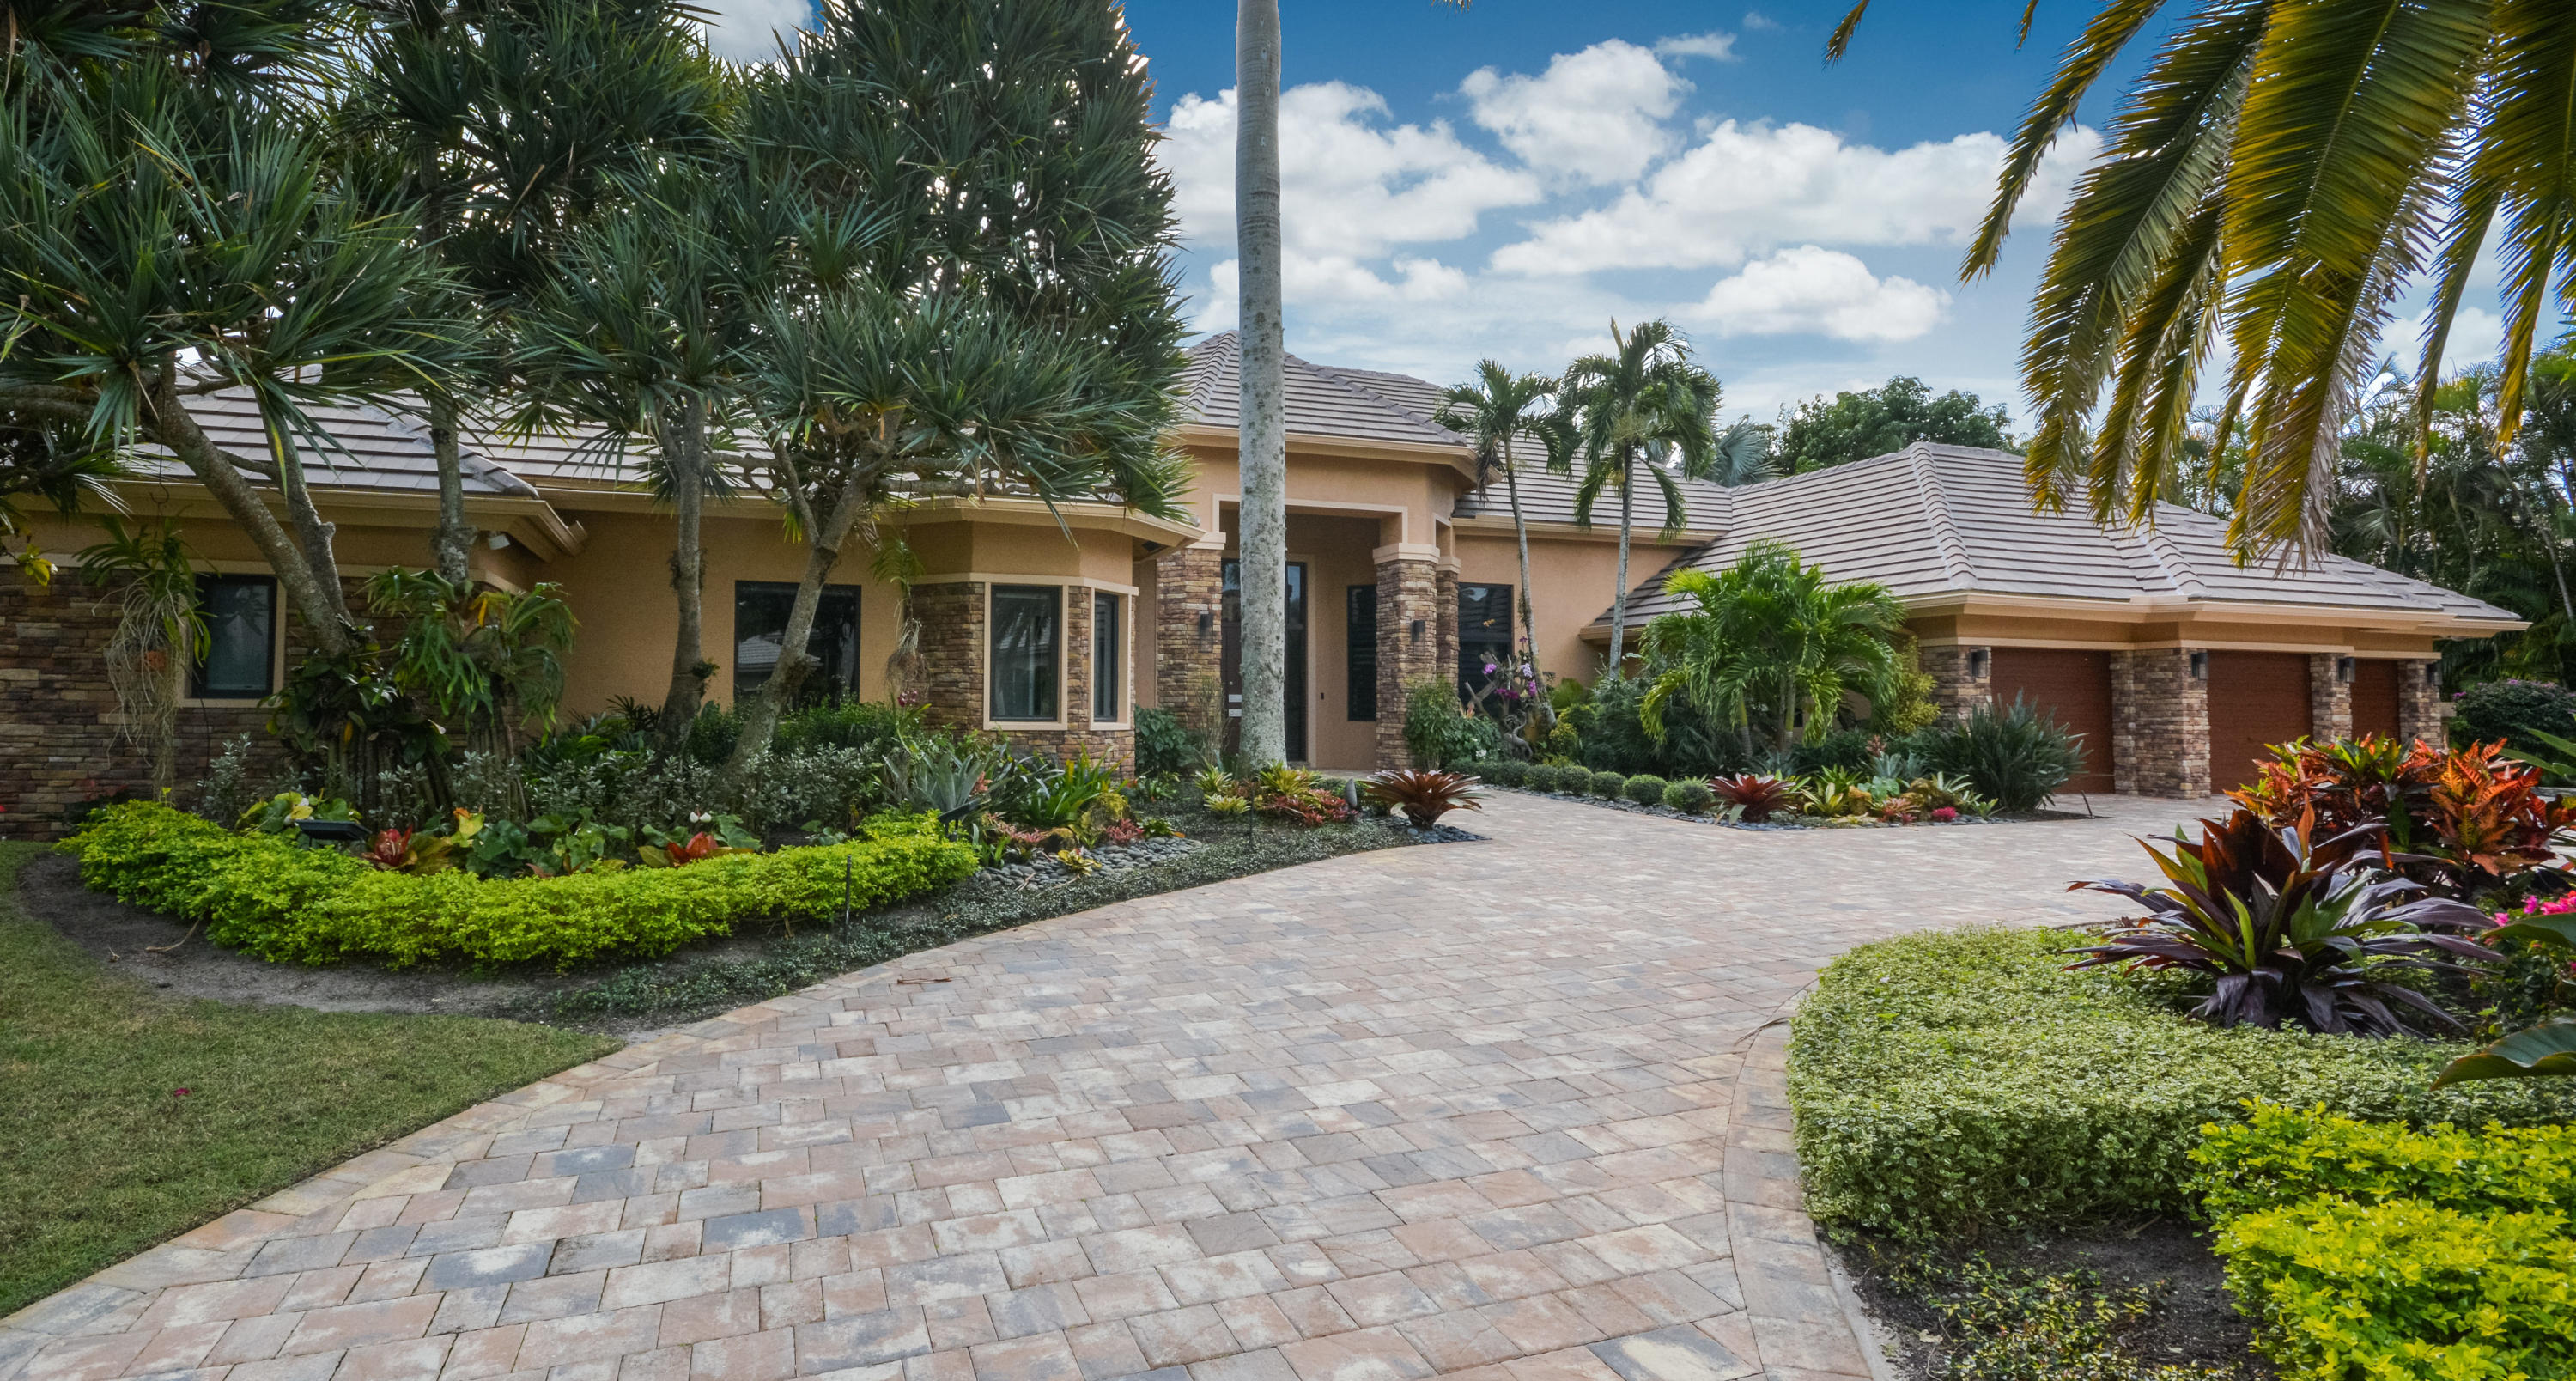 17938 Lake Estates Drive, Boca Raton, Florida 33496, 4 Bedrooms Bedrooms, ,5.1 BathroomsBathrooms,Single Family,For Sale,St Andrews Country Club,Lake Estates,1,RX-10402276